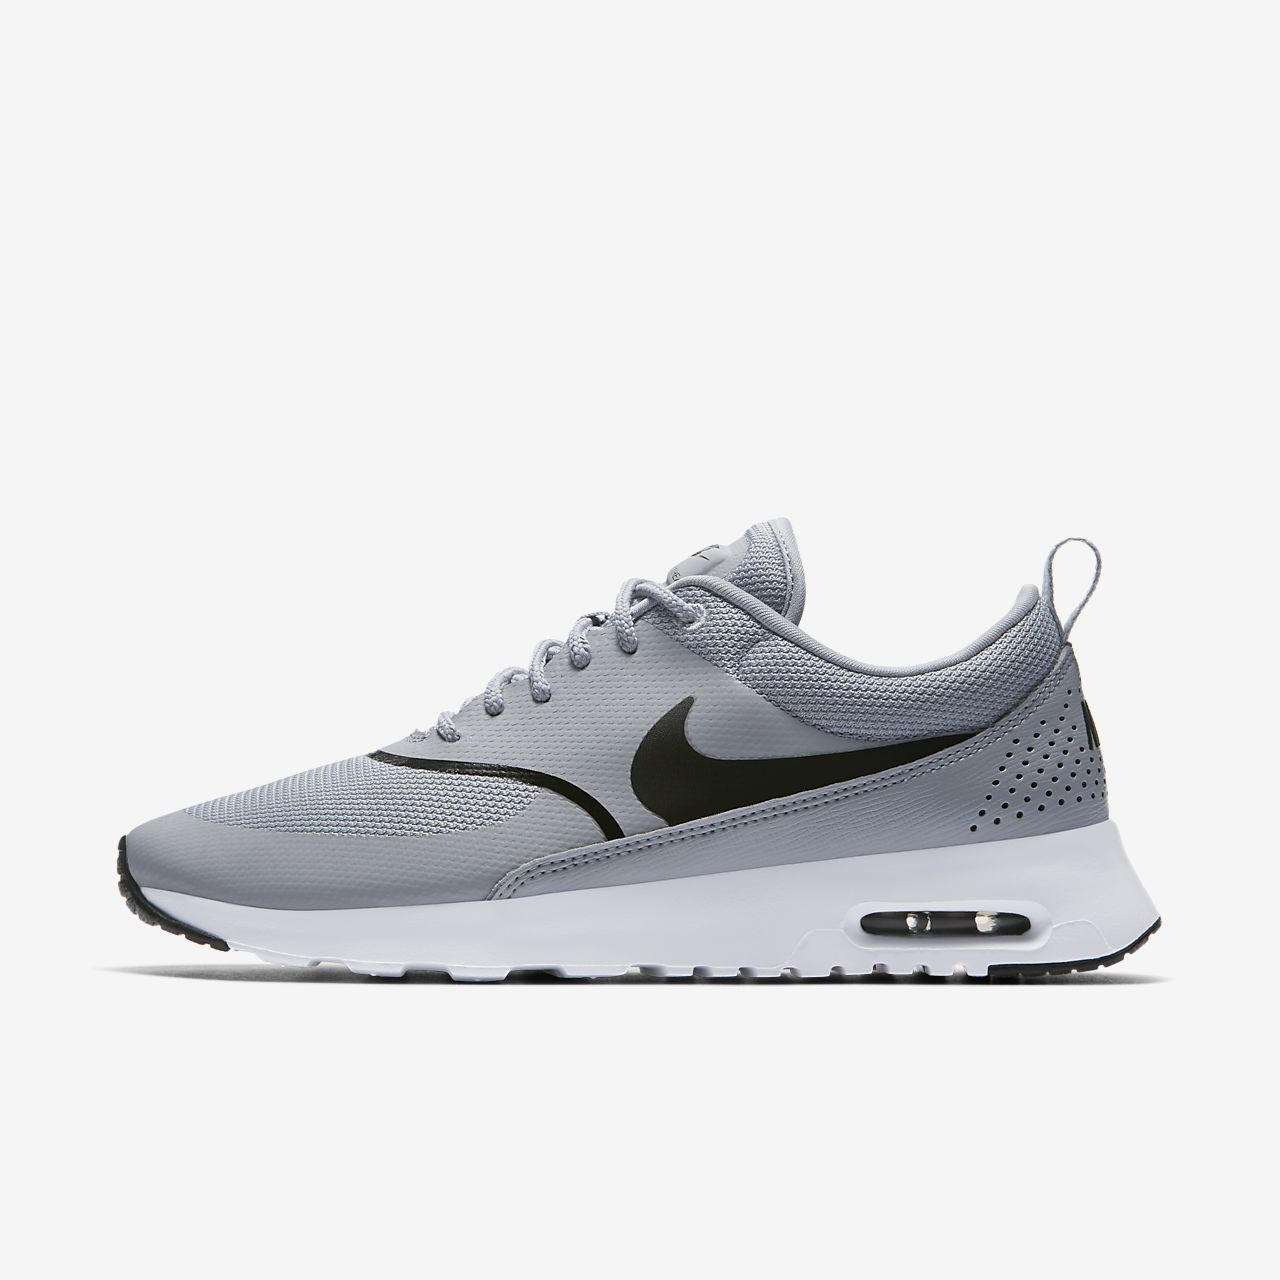 reputable site 44106 2bd7d ... Nike Air Max Thea Women s Shoe